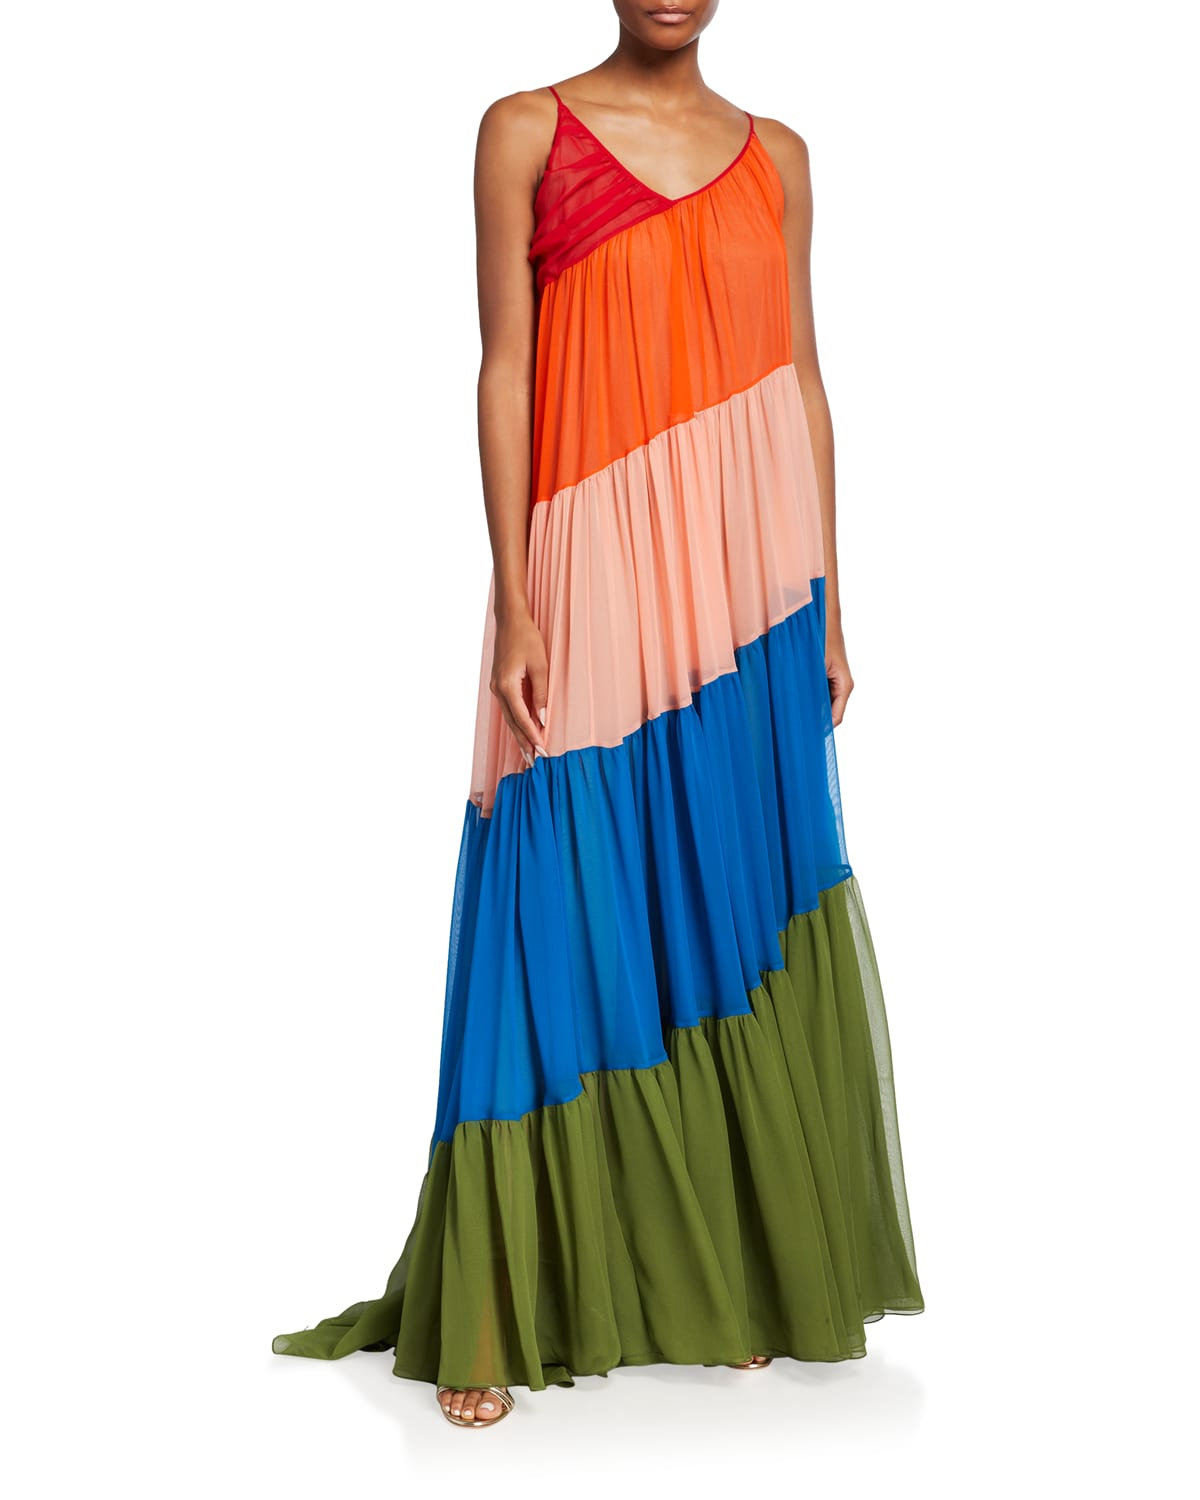 Diagonal Tiered-Colorblock Gown